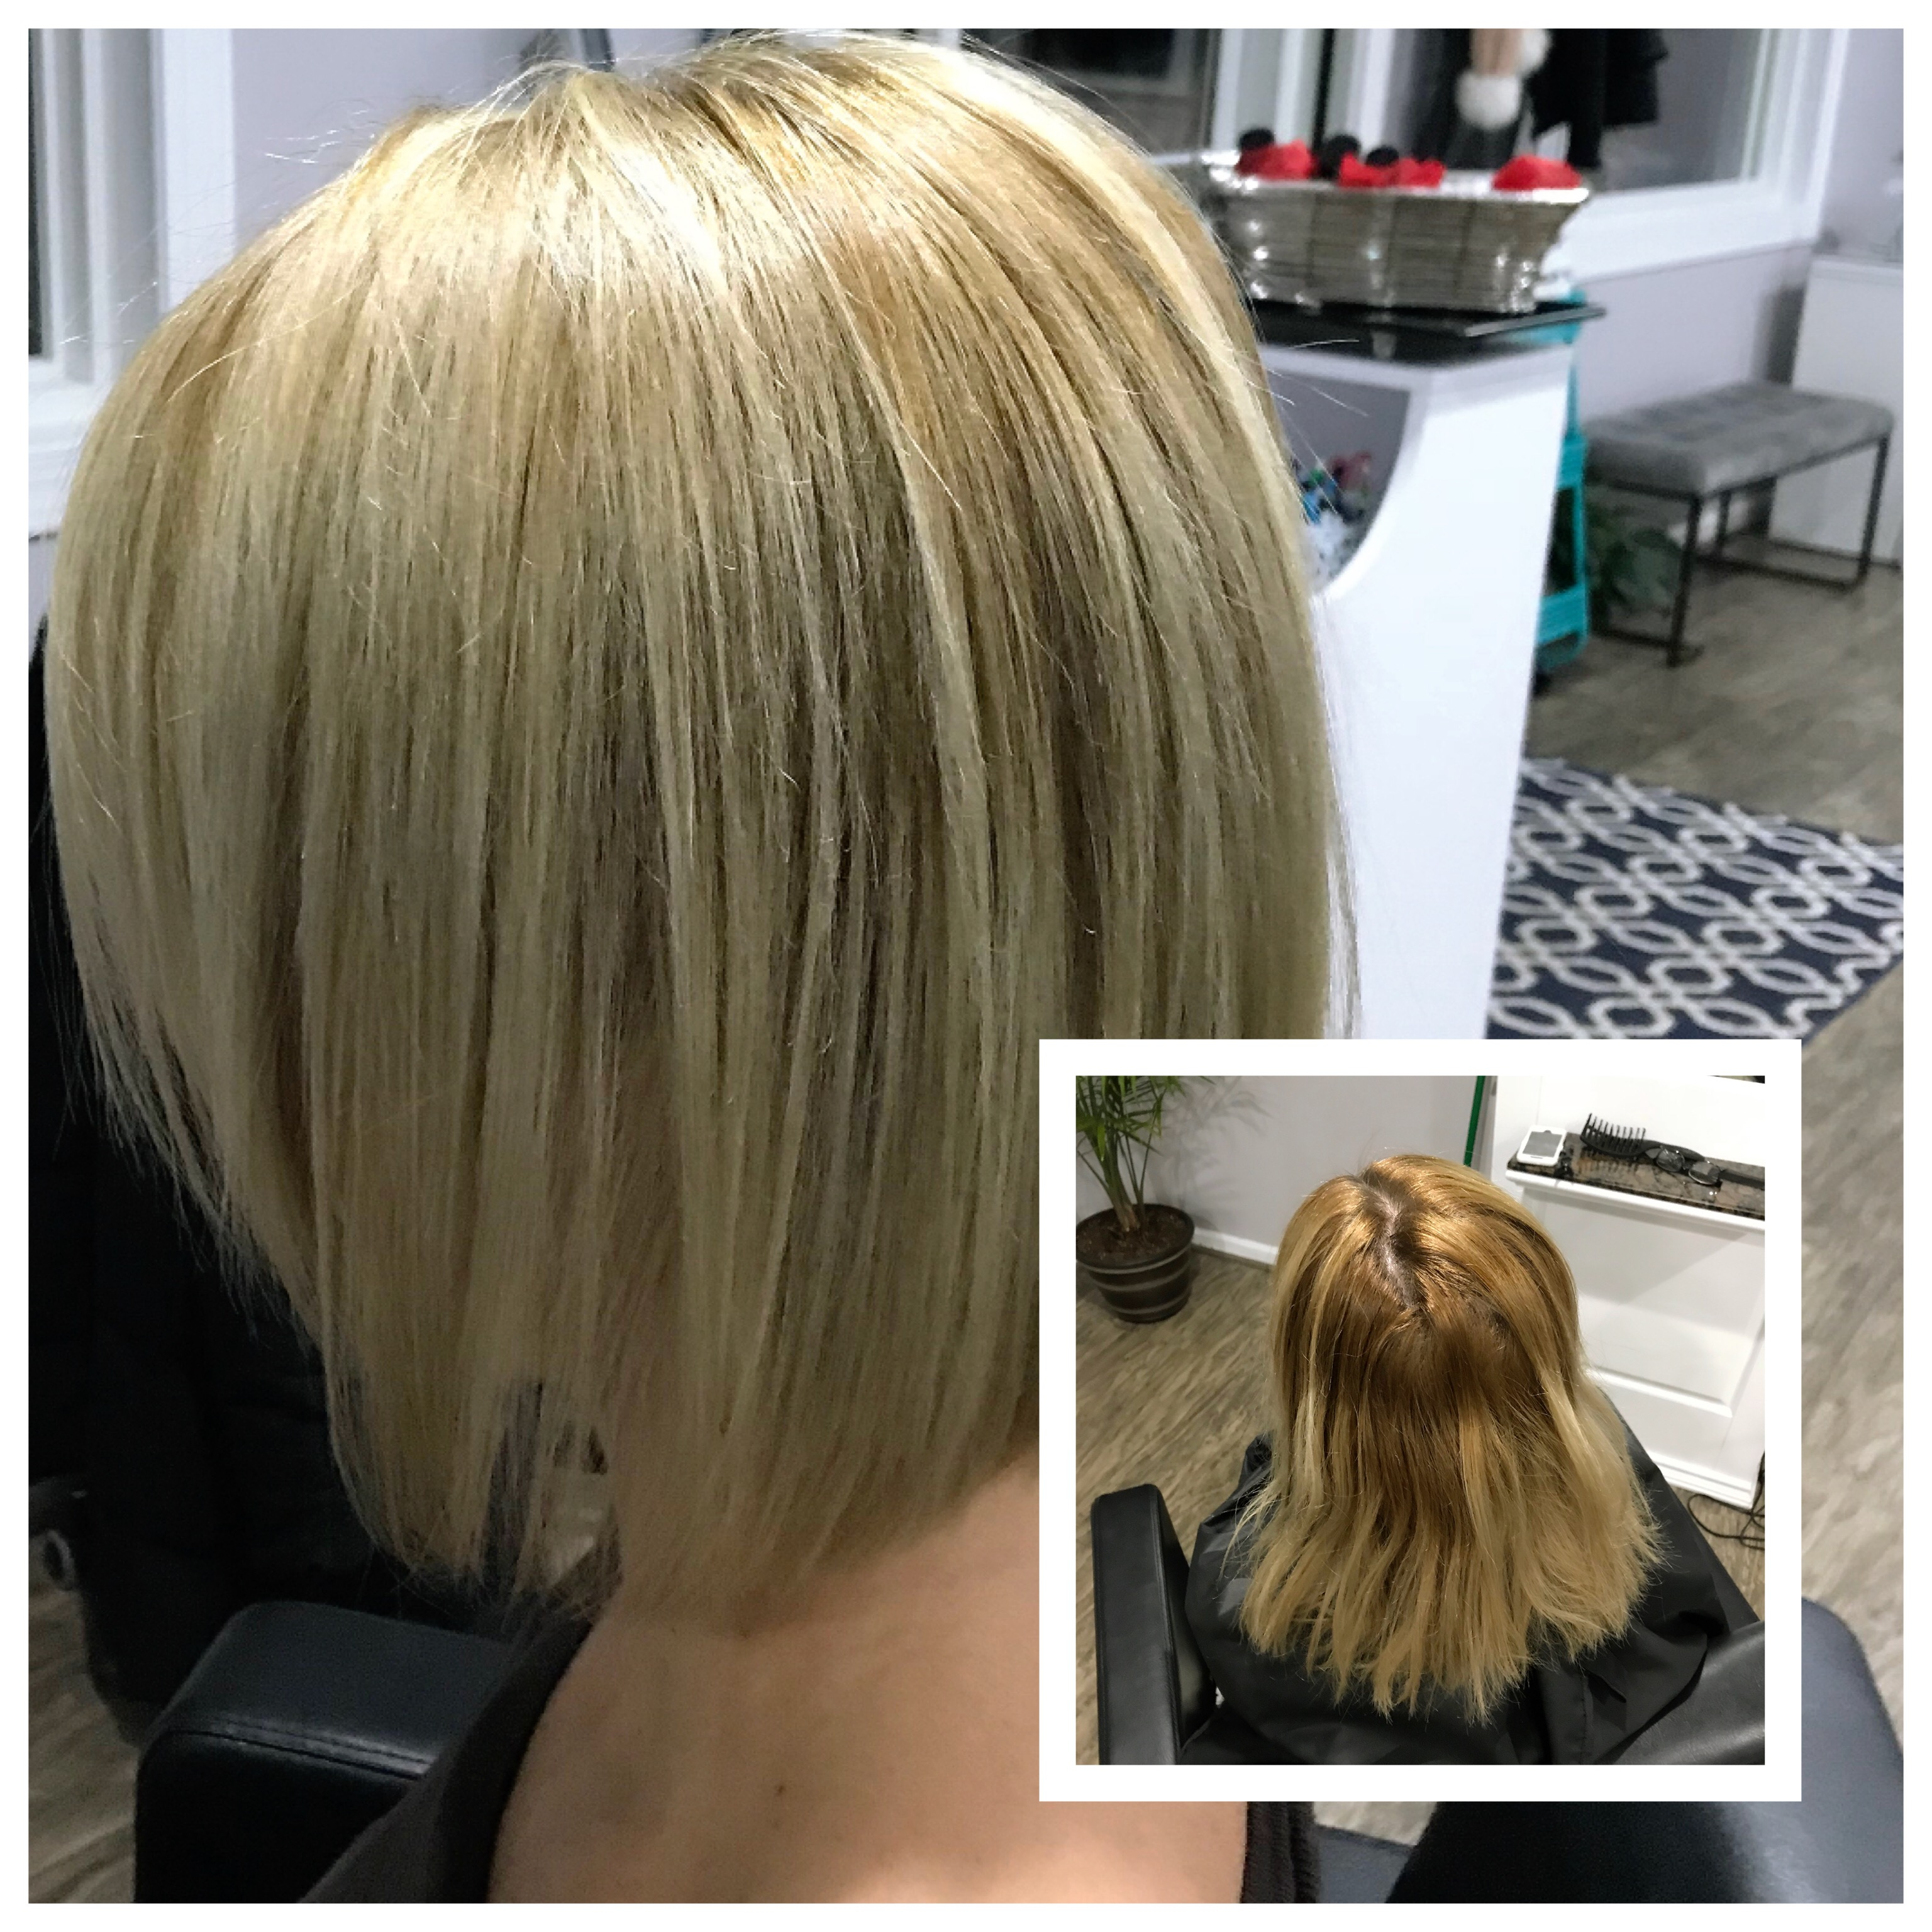 Before and After Blonde Hair Color Correction